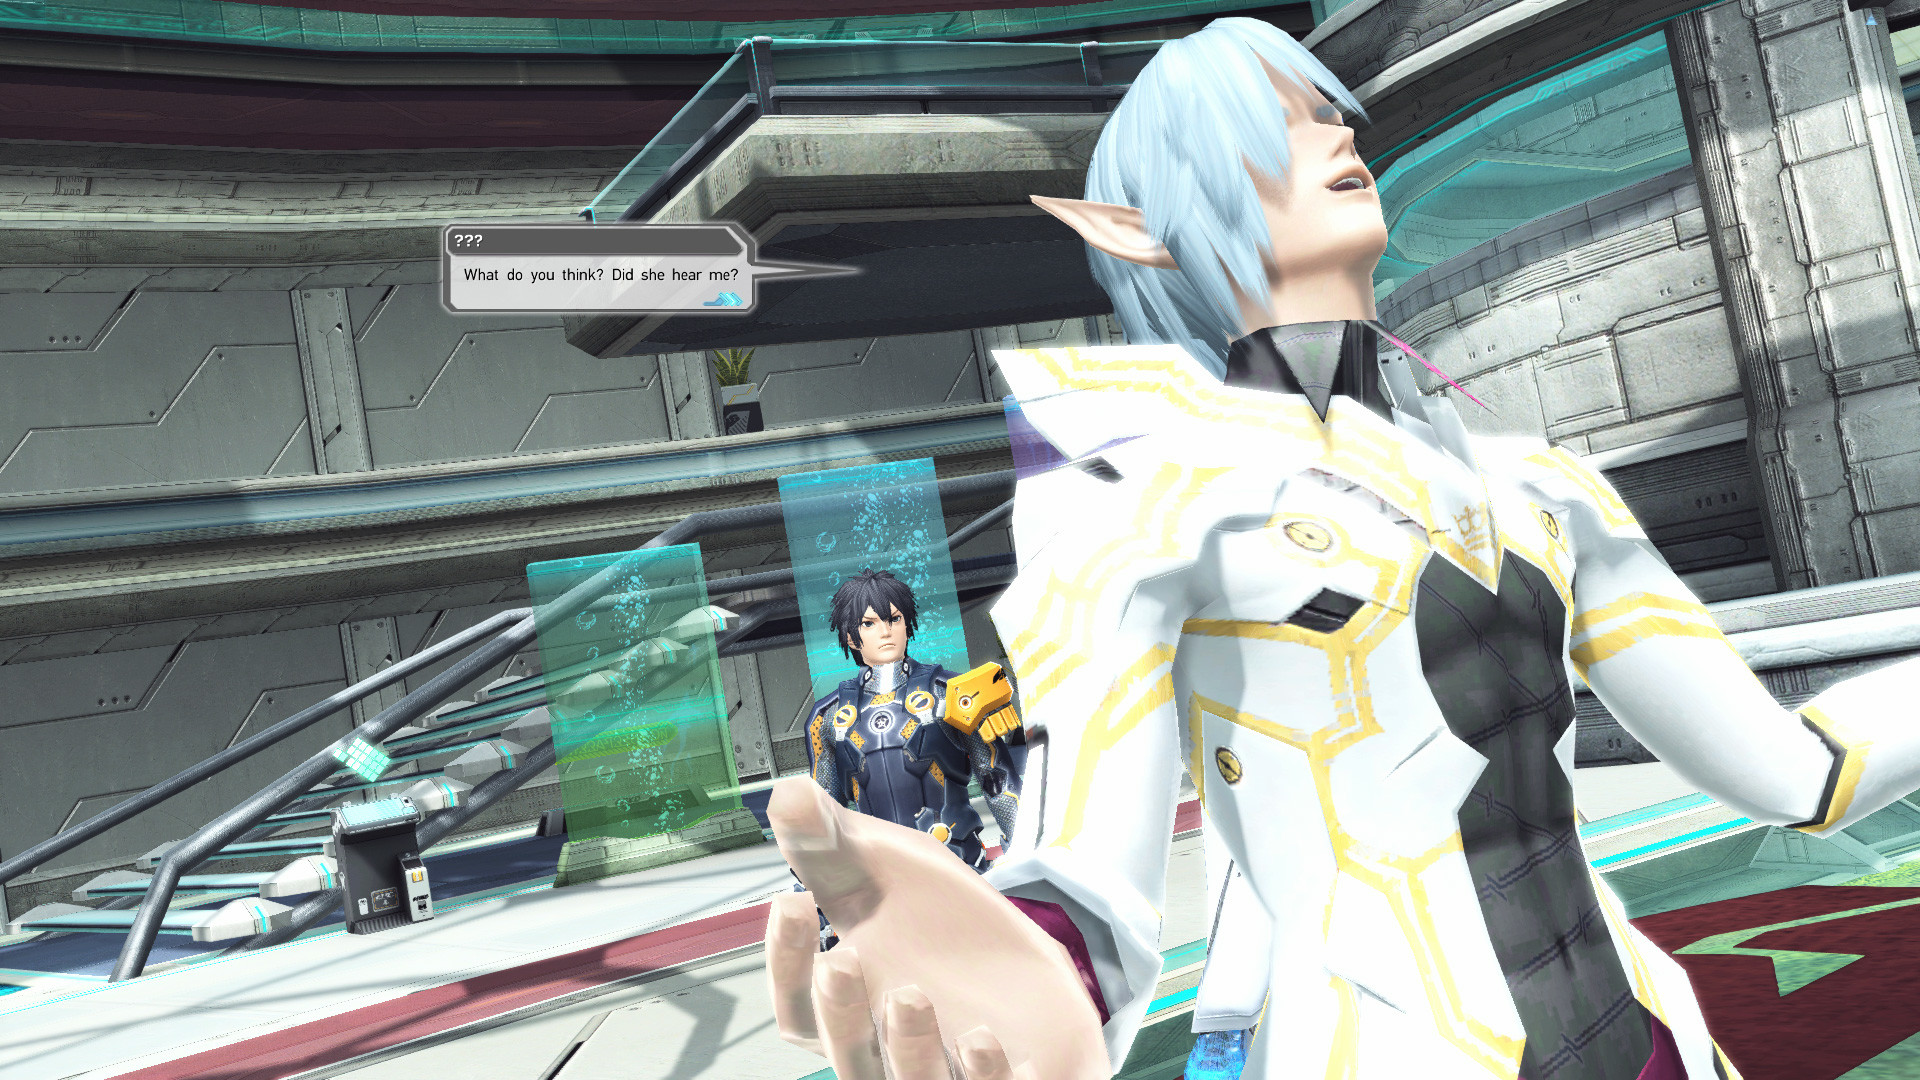 Phantasy Star Online 2 Steam release date laughing